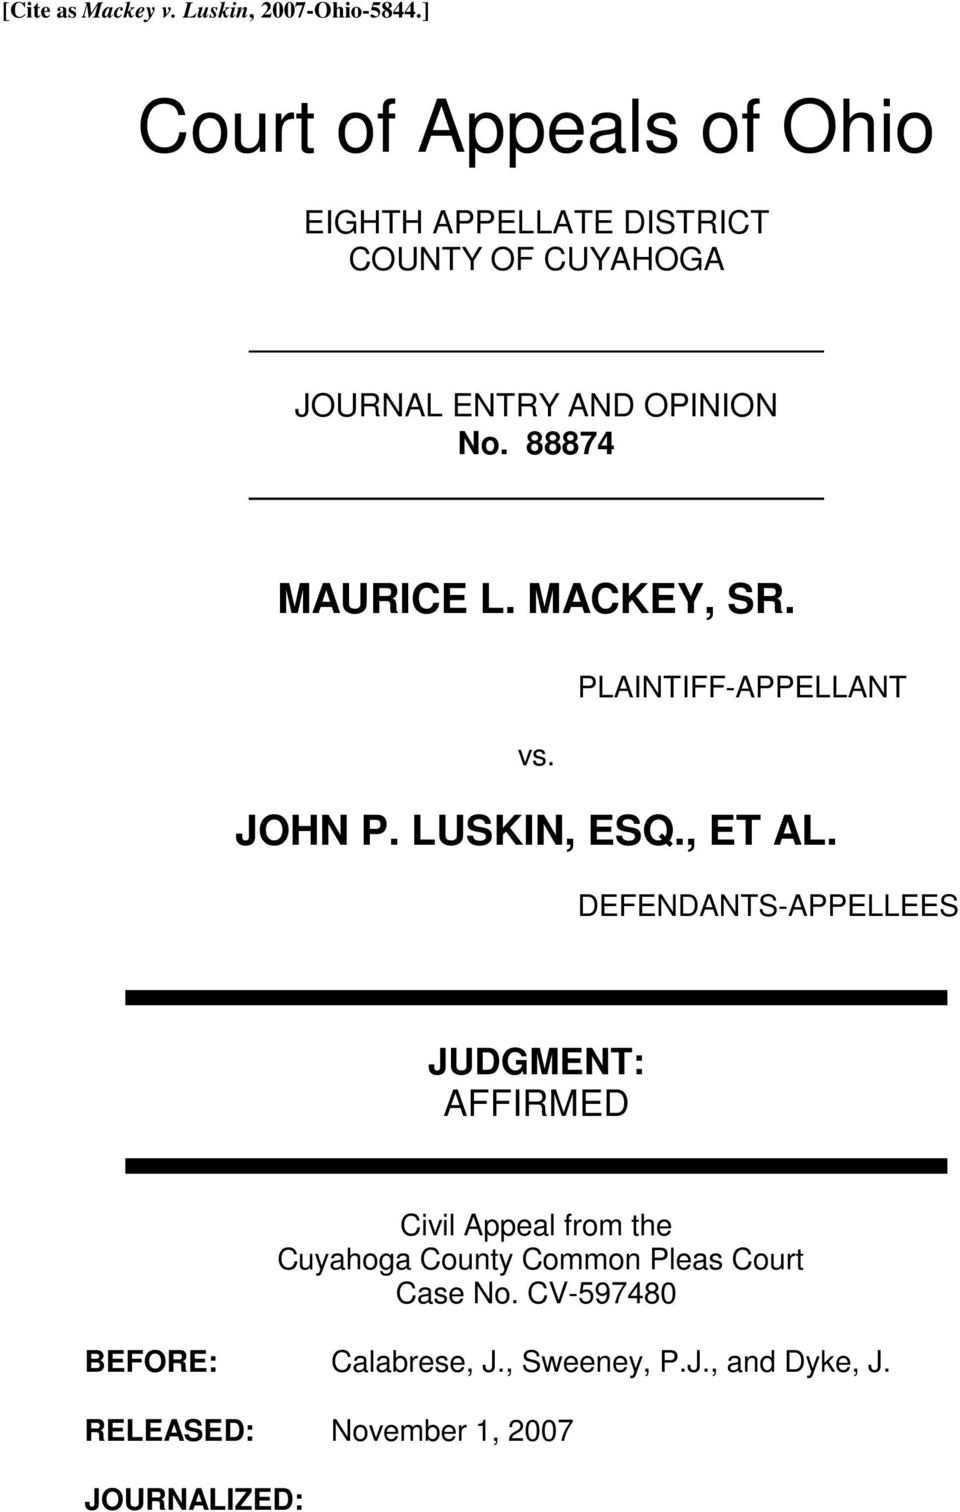 88874 MAURICE L. MACKEY, SR. PLAINTIFF-APPELLANT vs. JOHN P. LUSKIN, ESQ., ET AL.